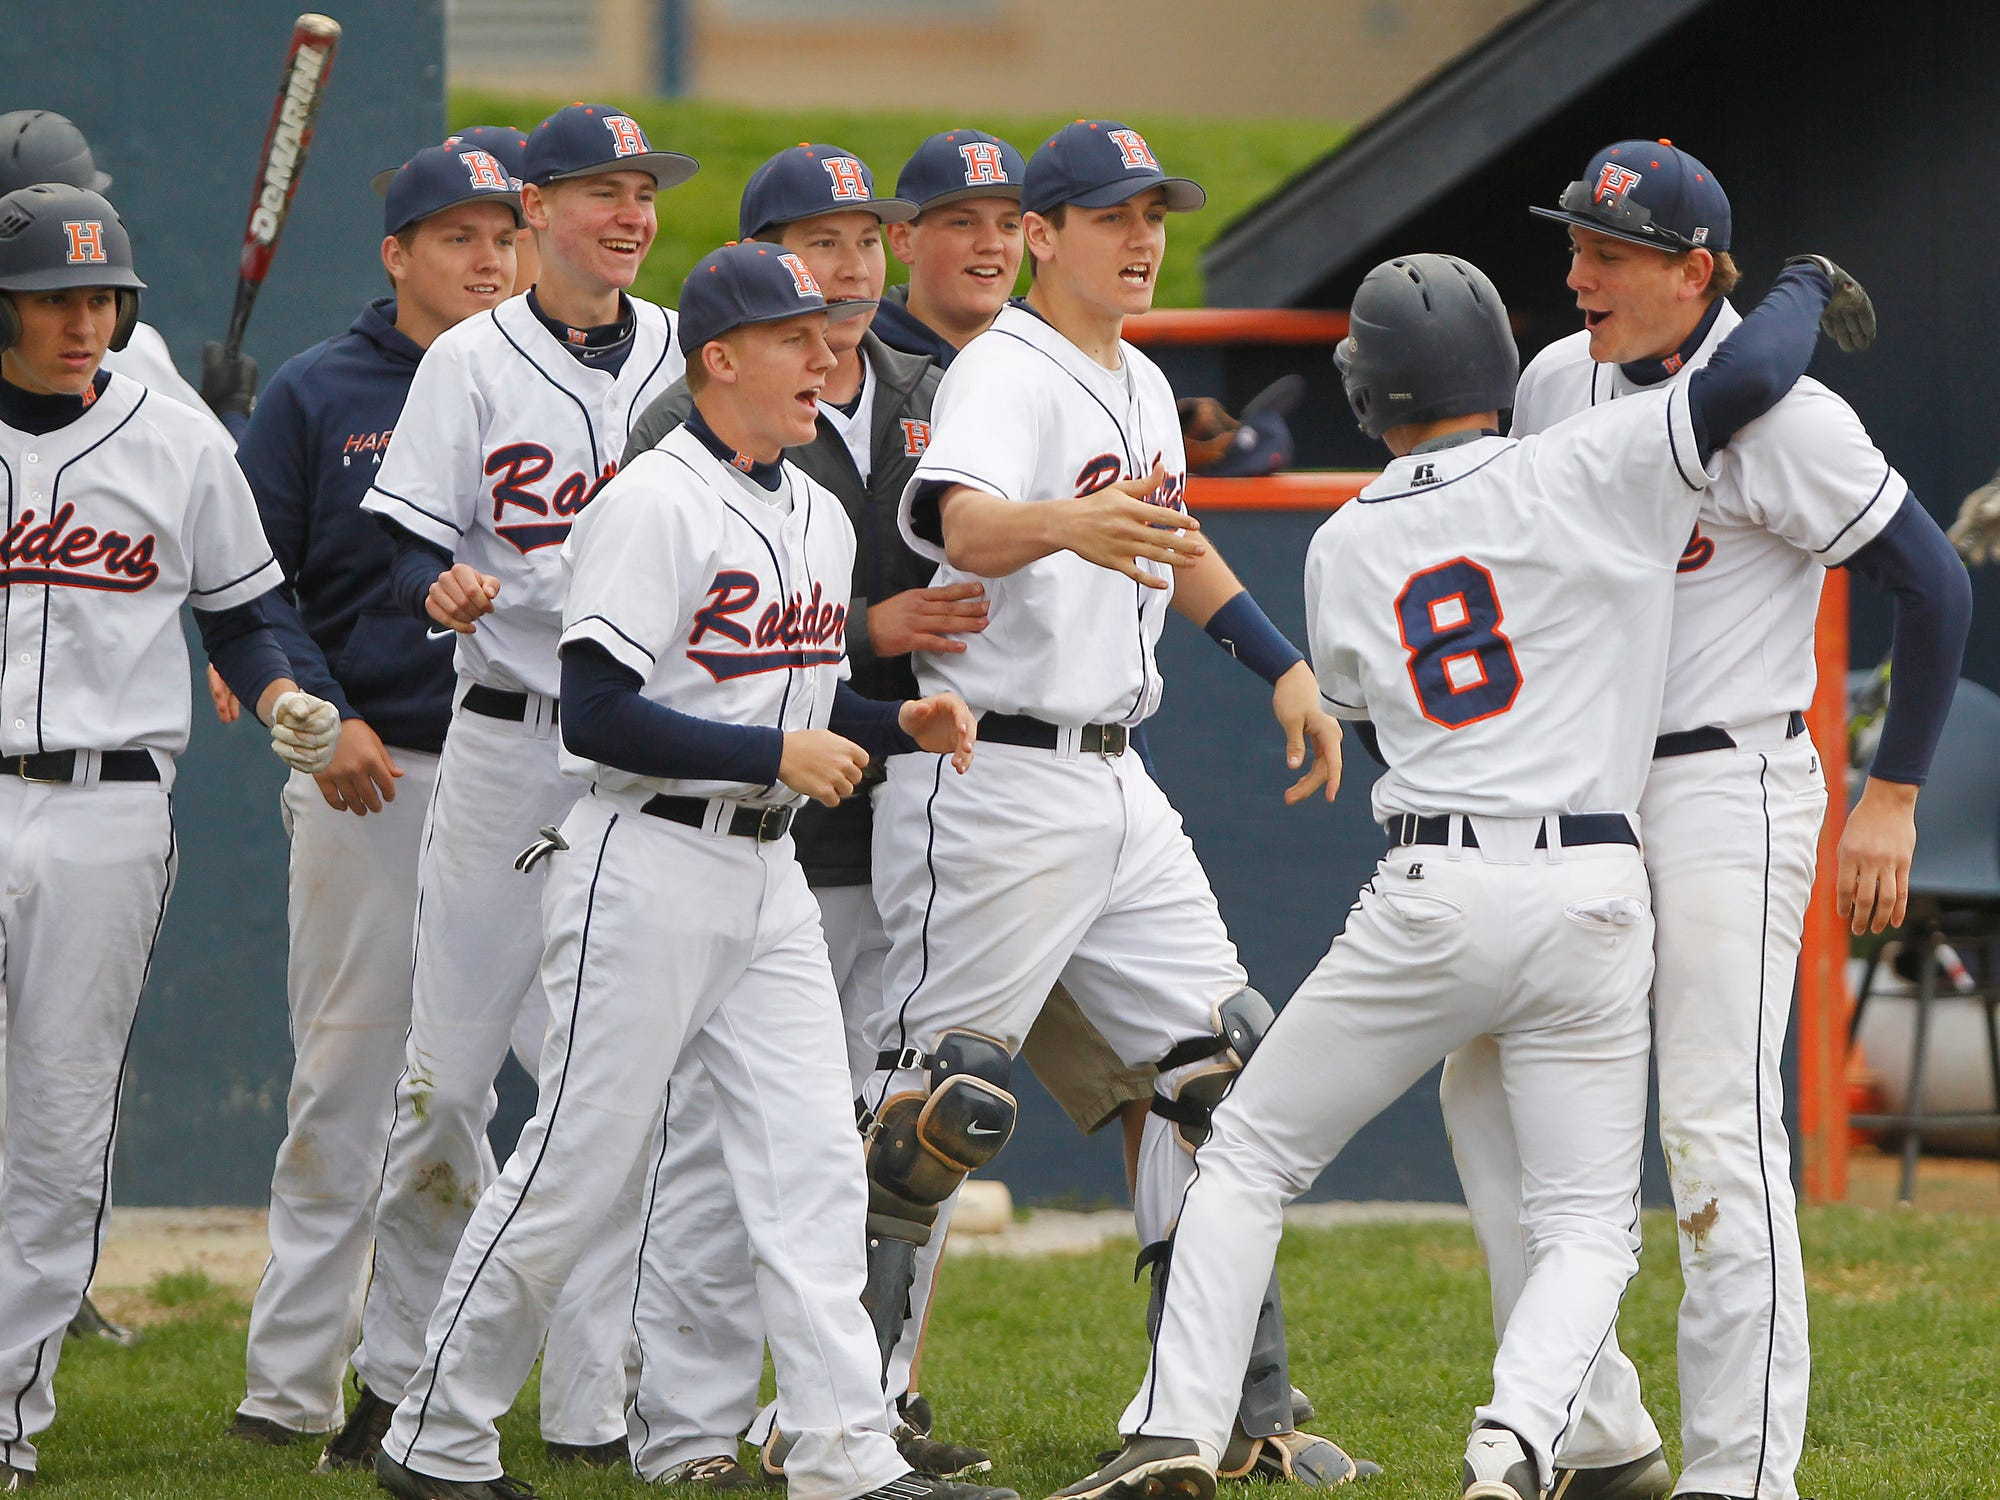 Mathew Roop (8) is greeted by his Harrison teammates after scoring on Rhett Baxter's grounder in the bottom of the sixth inning against McCutcheon.